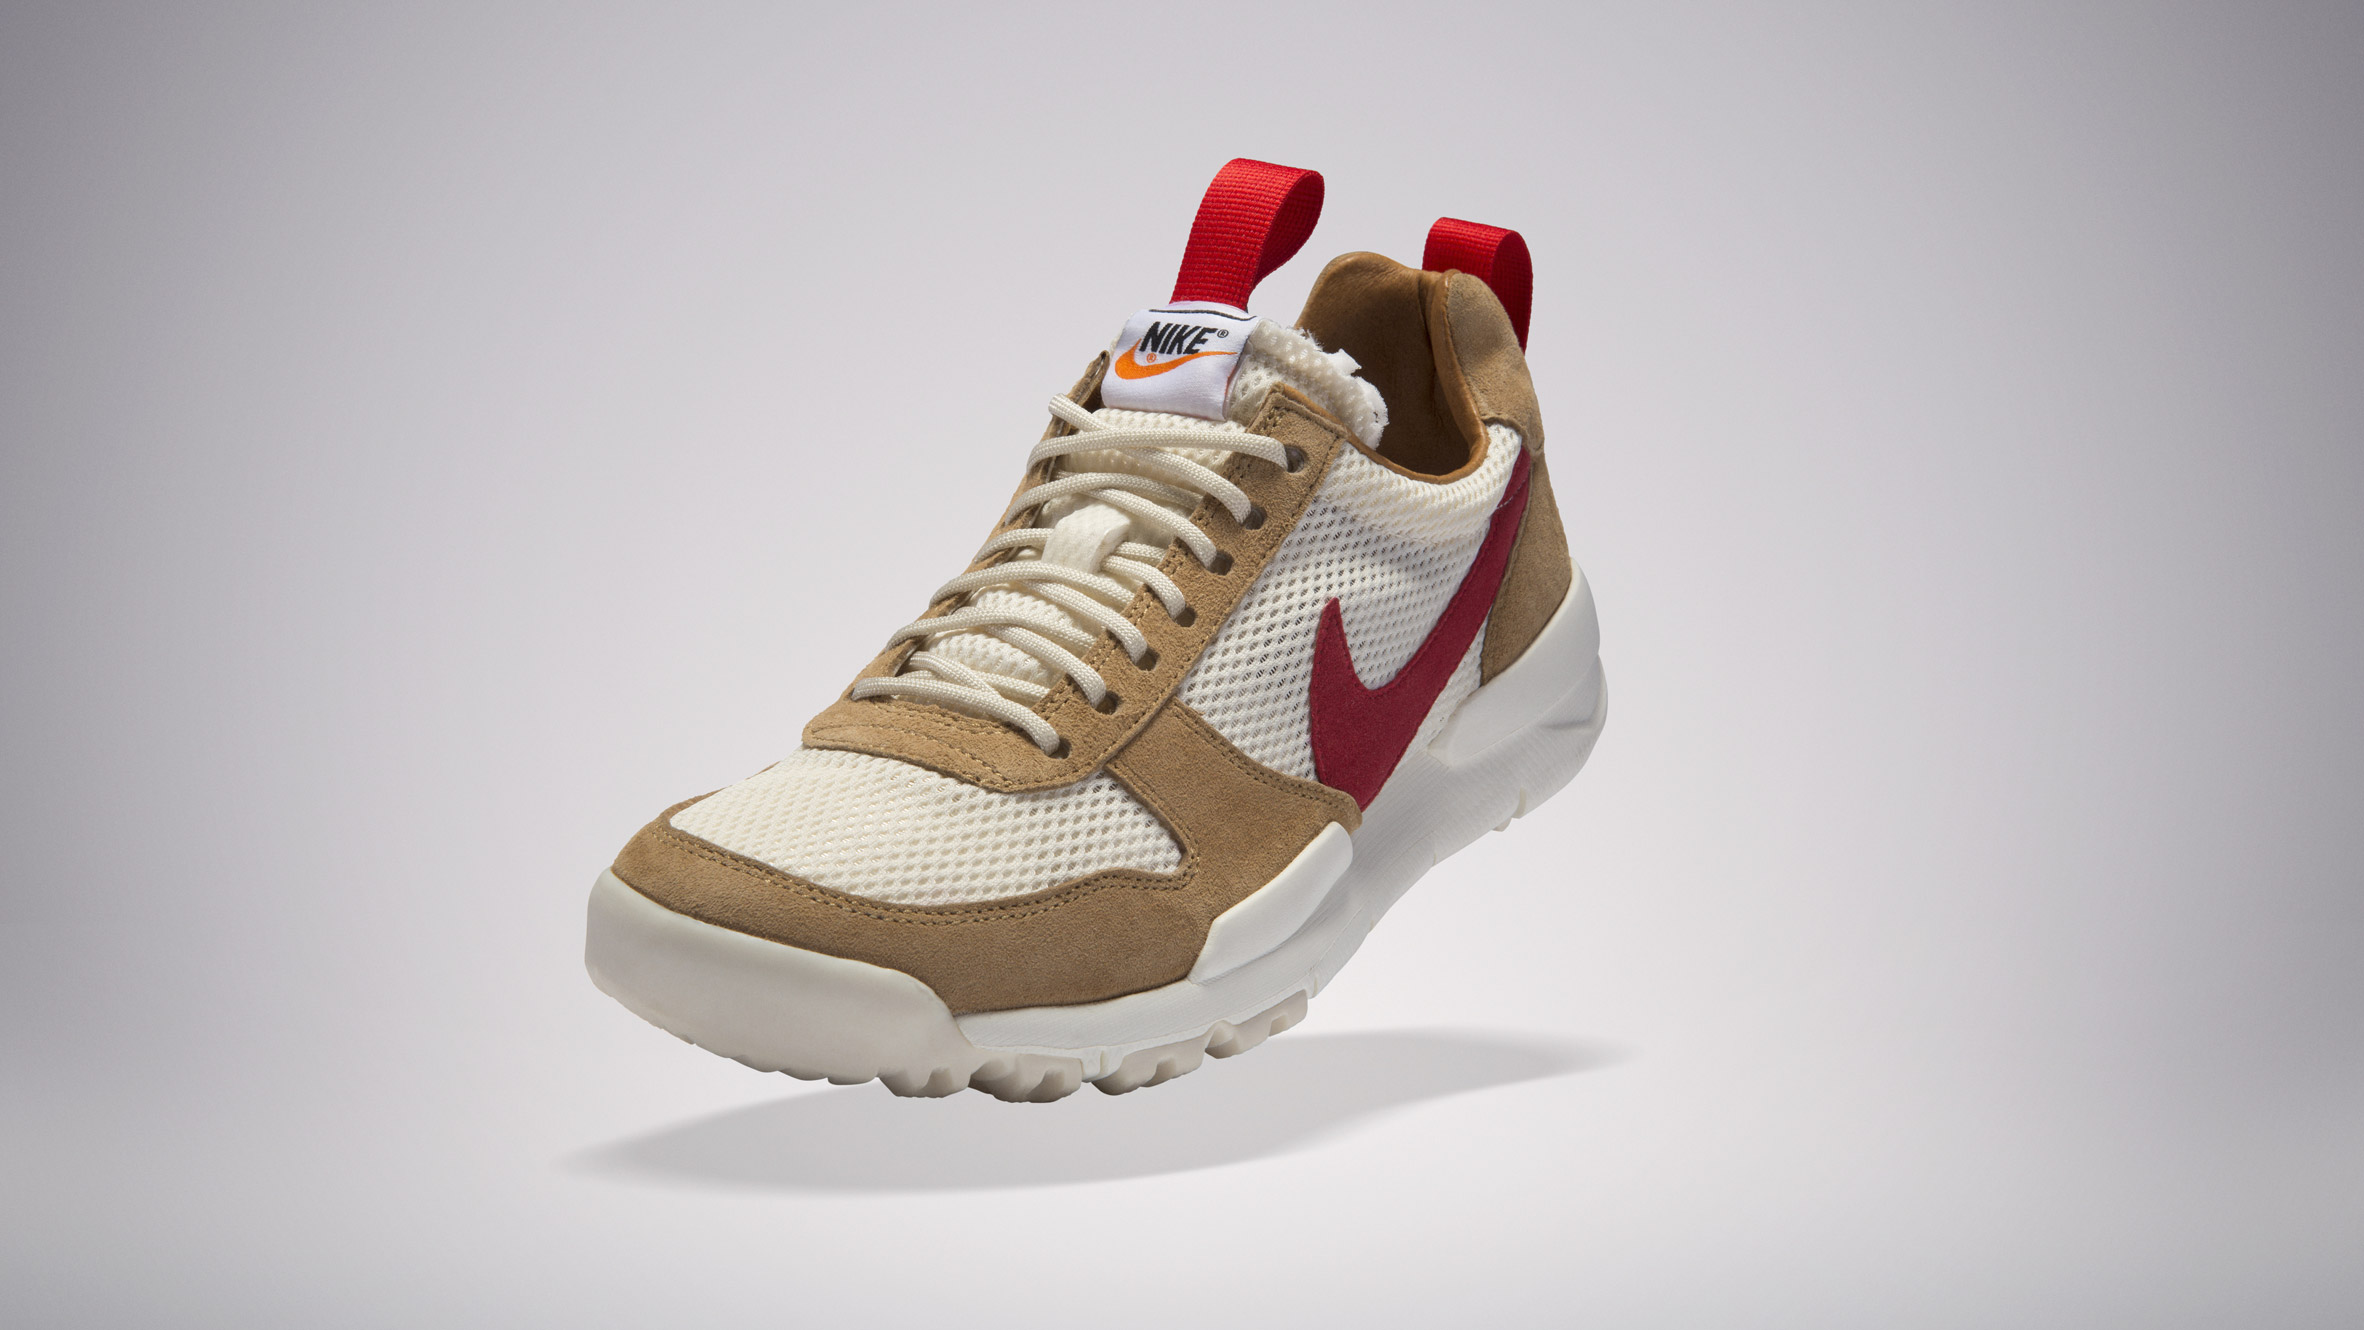 Tom Sachs releases second edition of Mars Yard sneakers for Nike